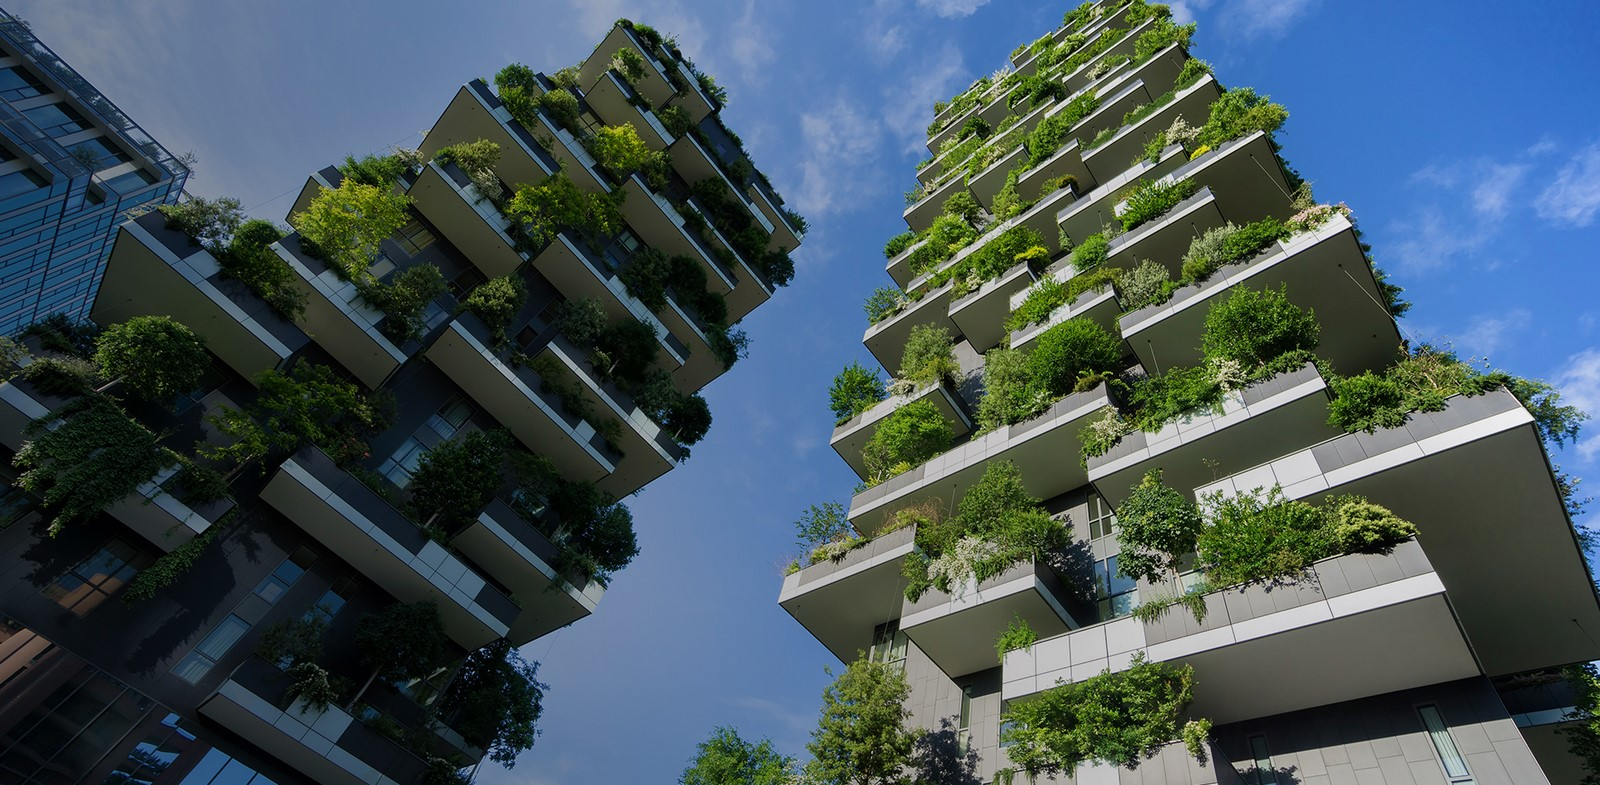 Why architects must look into hiring sustainability consultants - Sheet1